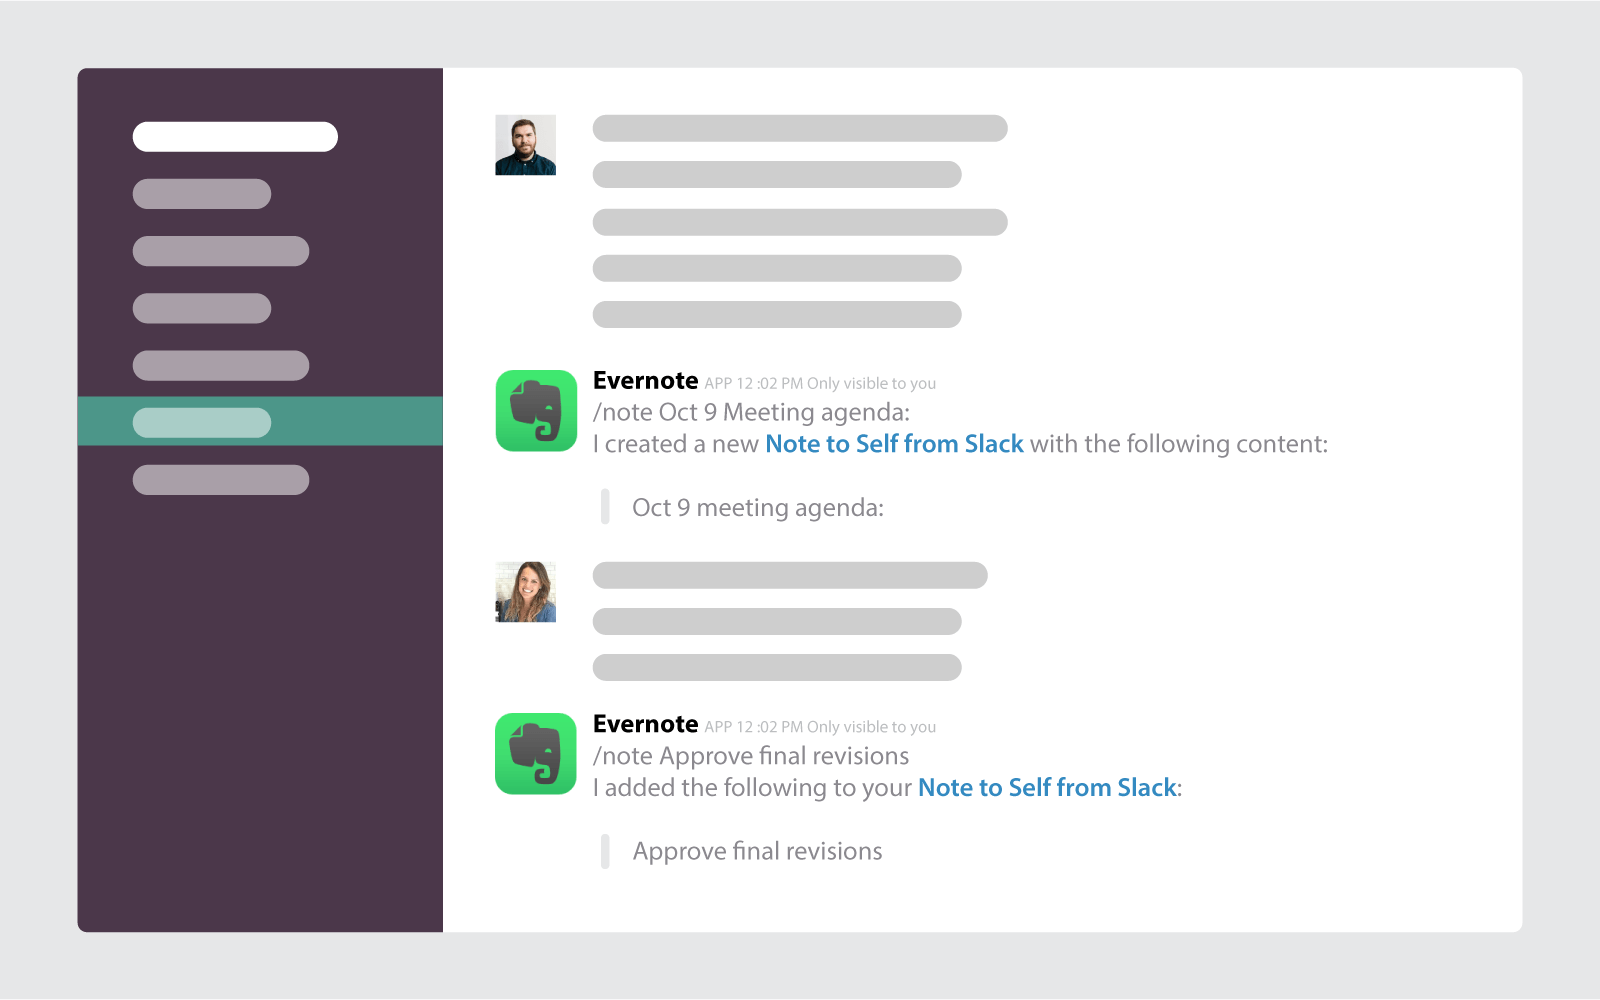 Creating Notes to Self in Slack